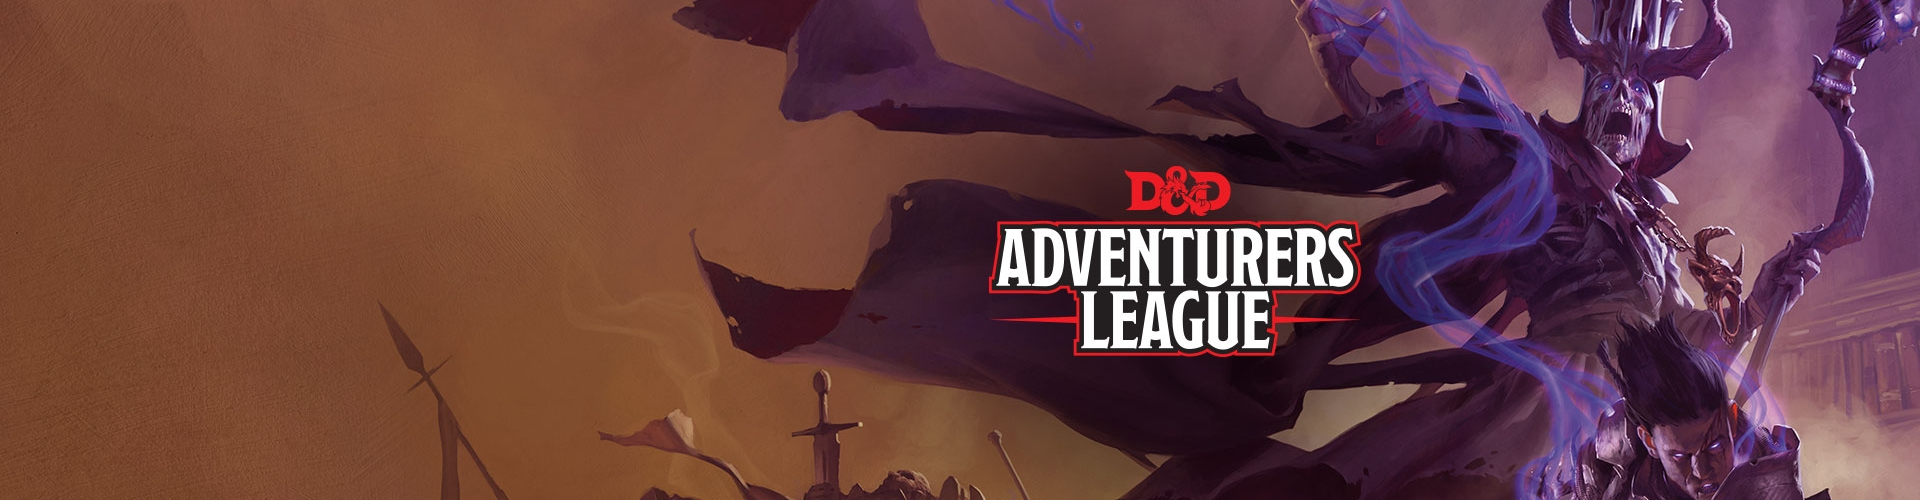 Where You Can Find the D&D Team in 2016